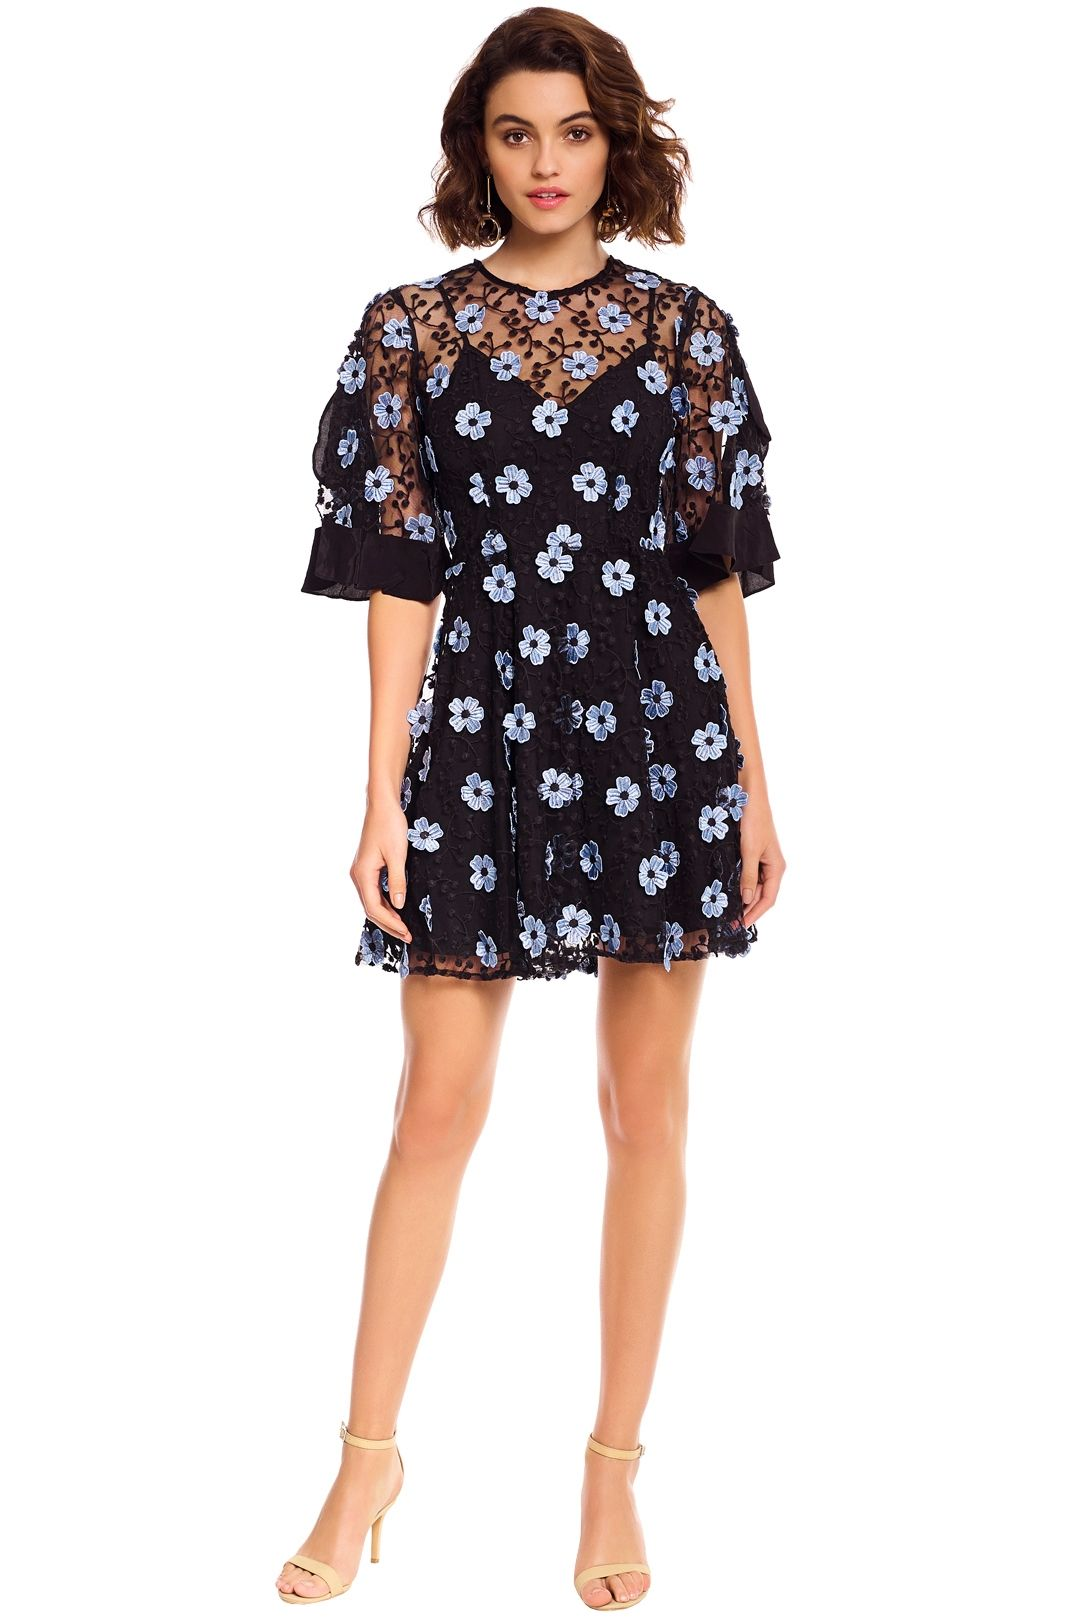 Talulah - Crave You Mini Dress - Black - Front